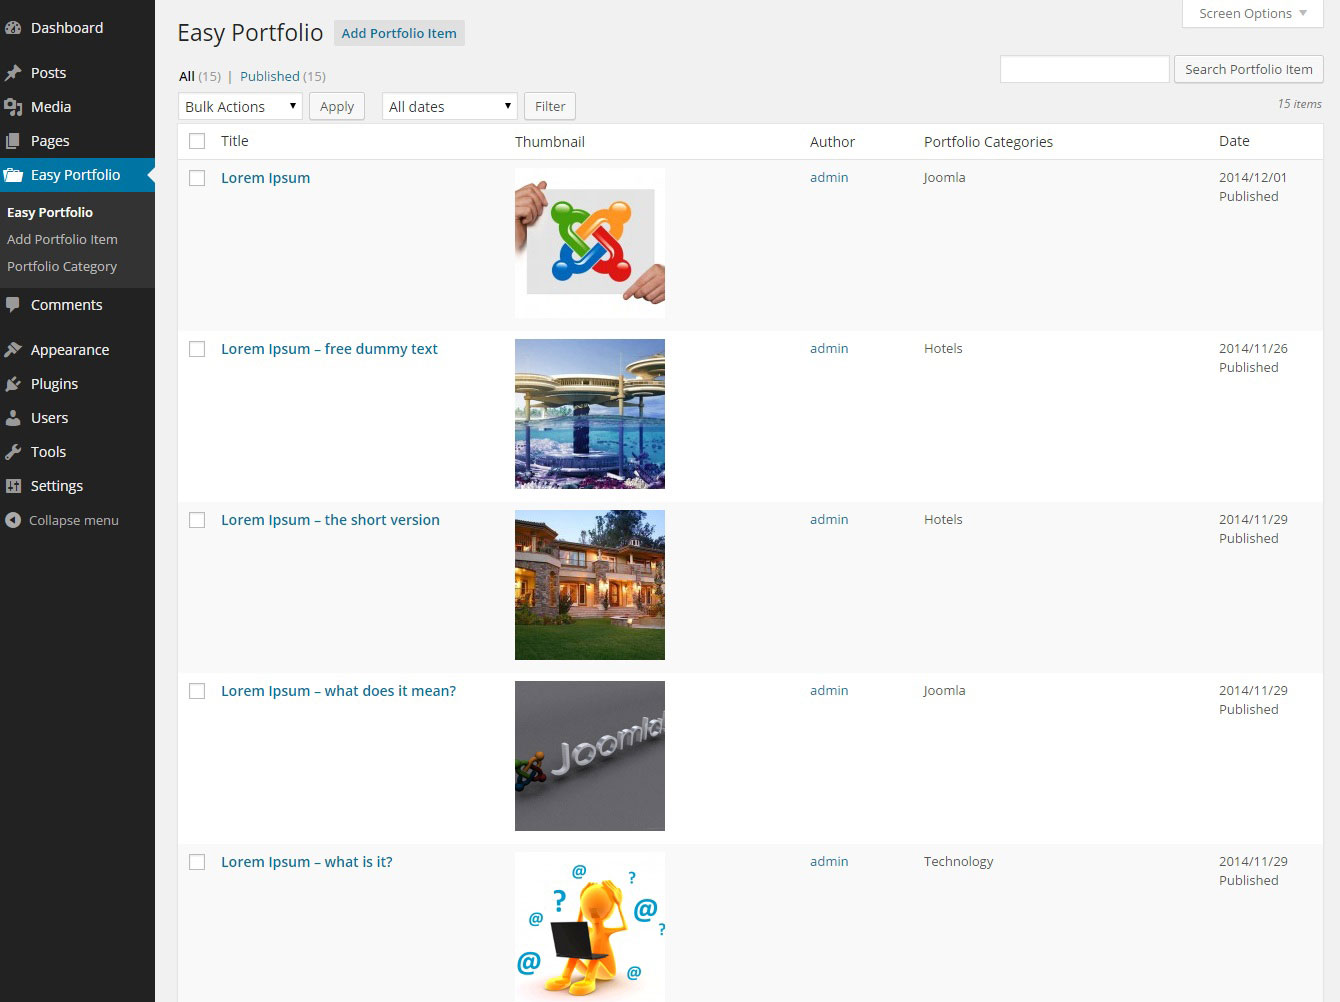 Overview List Of Portfolio/Project are shows and also can manage list of Portfolio items.